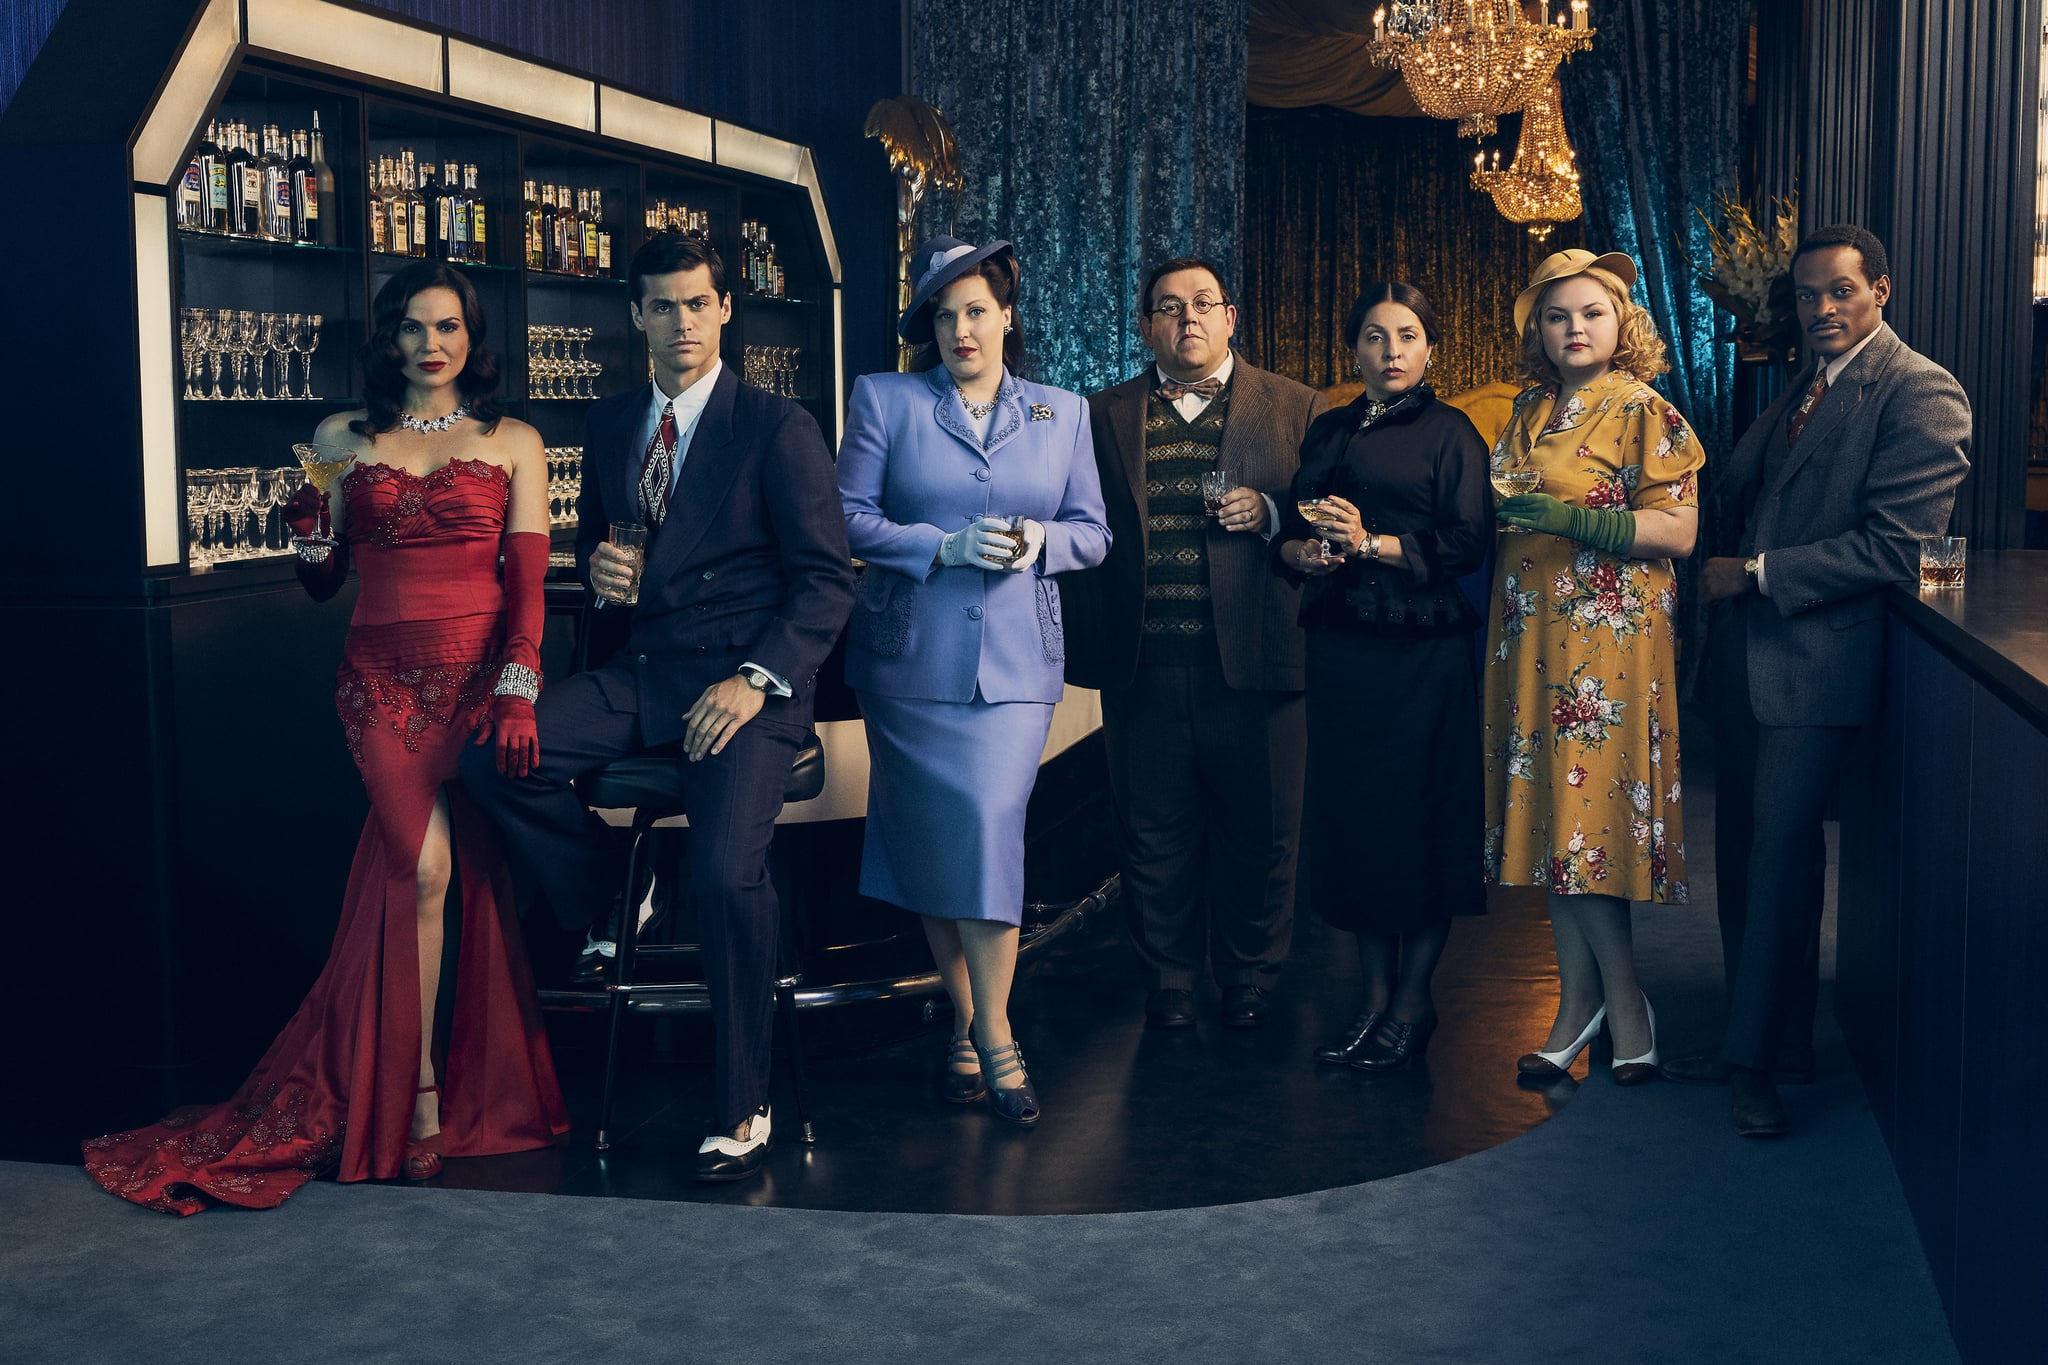 Pictured: Lana Parrilla as Rita, Matthew Daddario as Scooter, Allison Tolman as Alma, Nick Frost as Bertram, BK Cannon as Dee and Jordane Christie of the Paramount+ series WHY WOMEN KILL Photo Cr: Sarah Coulter/ ©2021 Paramount+, Inc. All Rights Reserved.